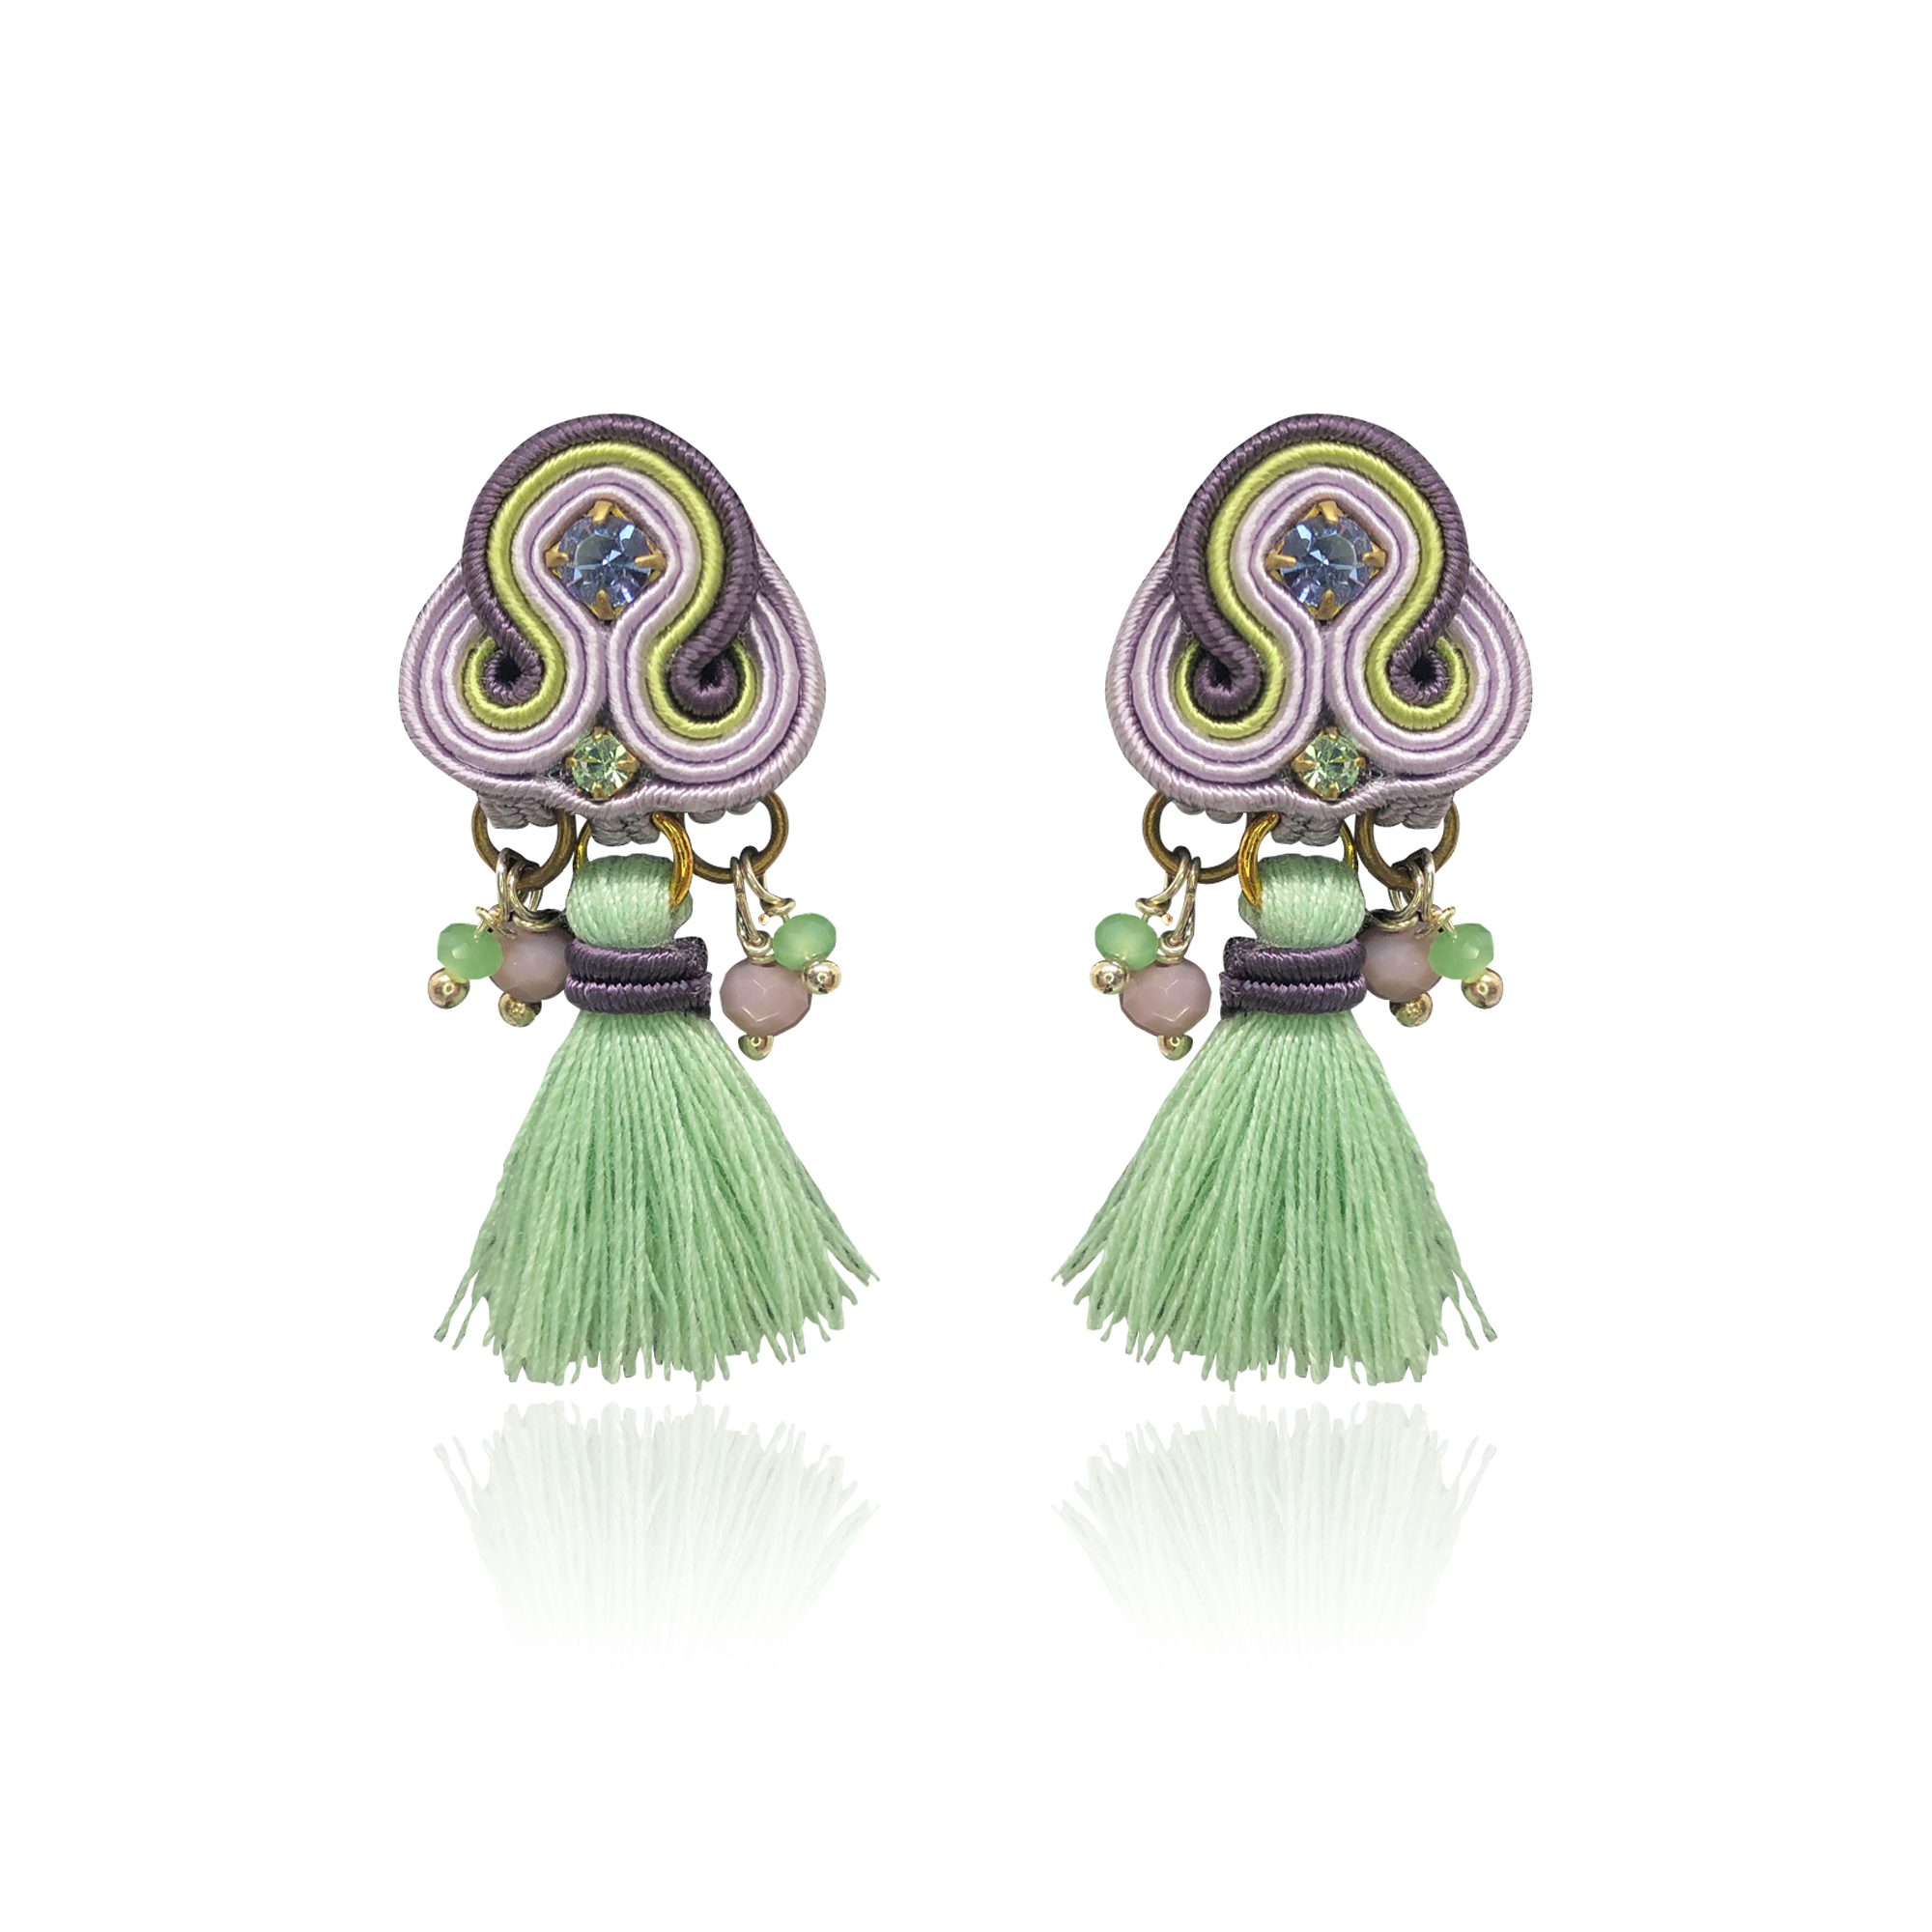 Lila and Light Green Mini Borla Earrings